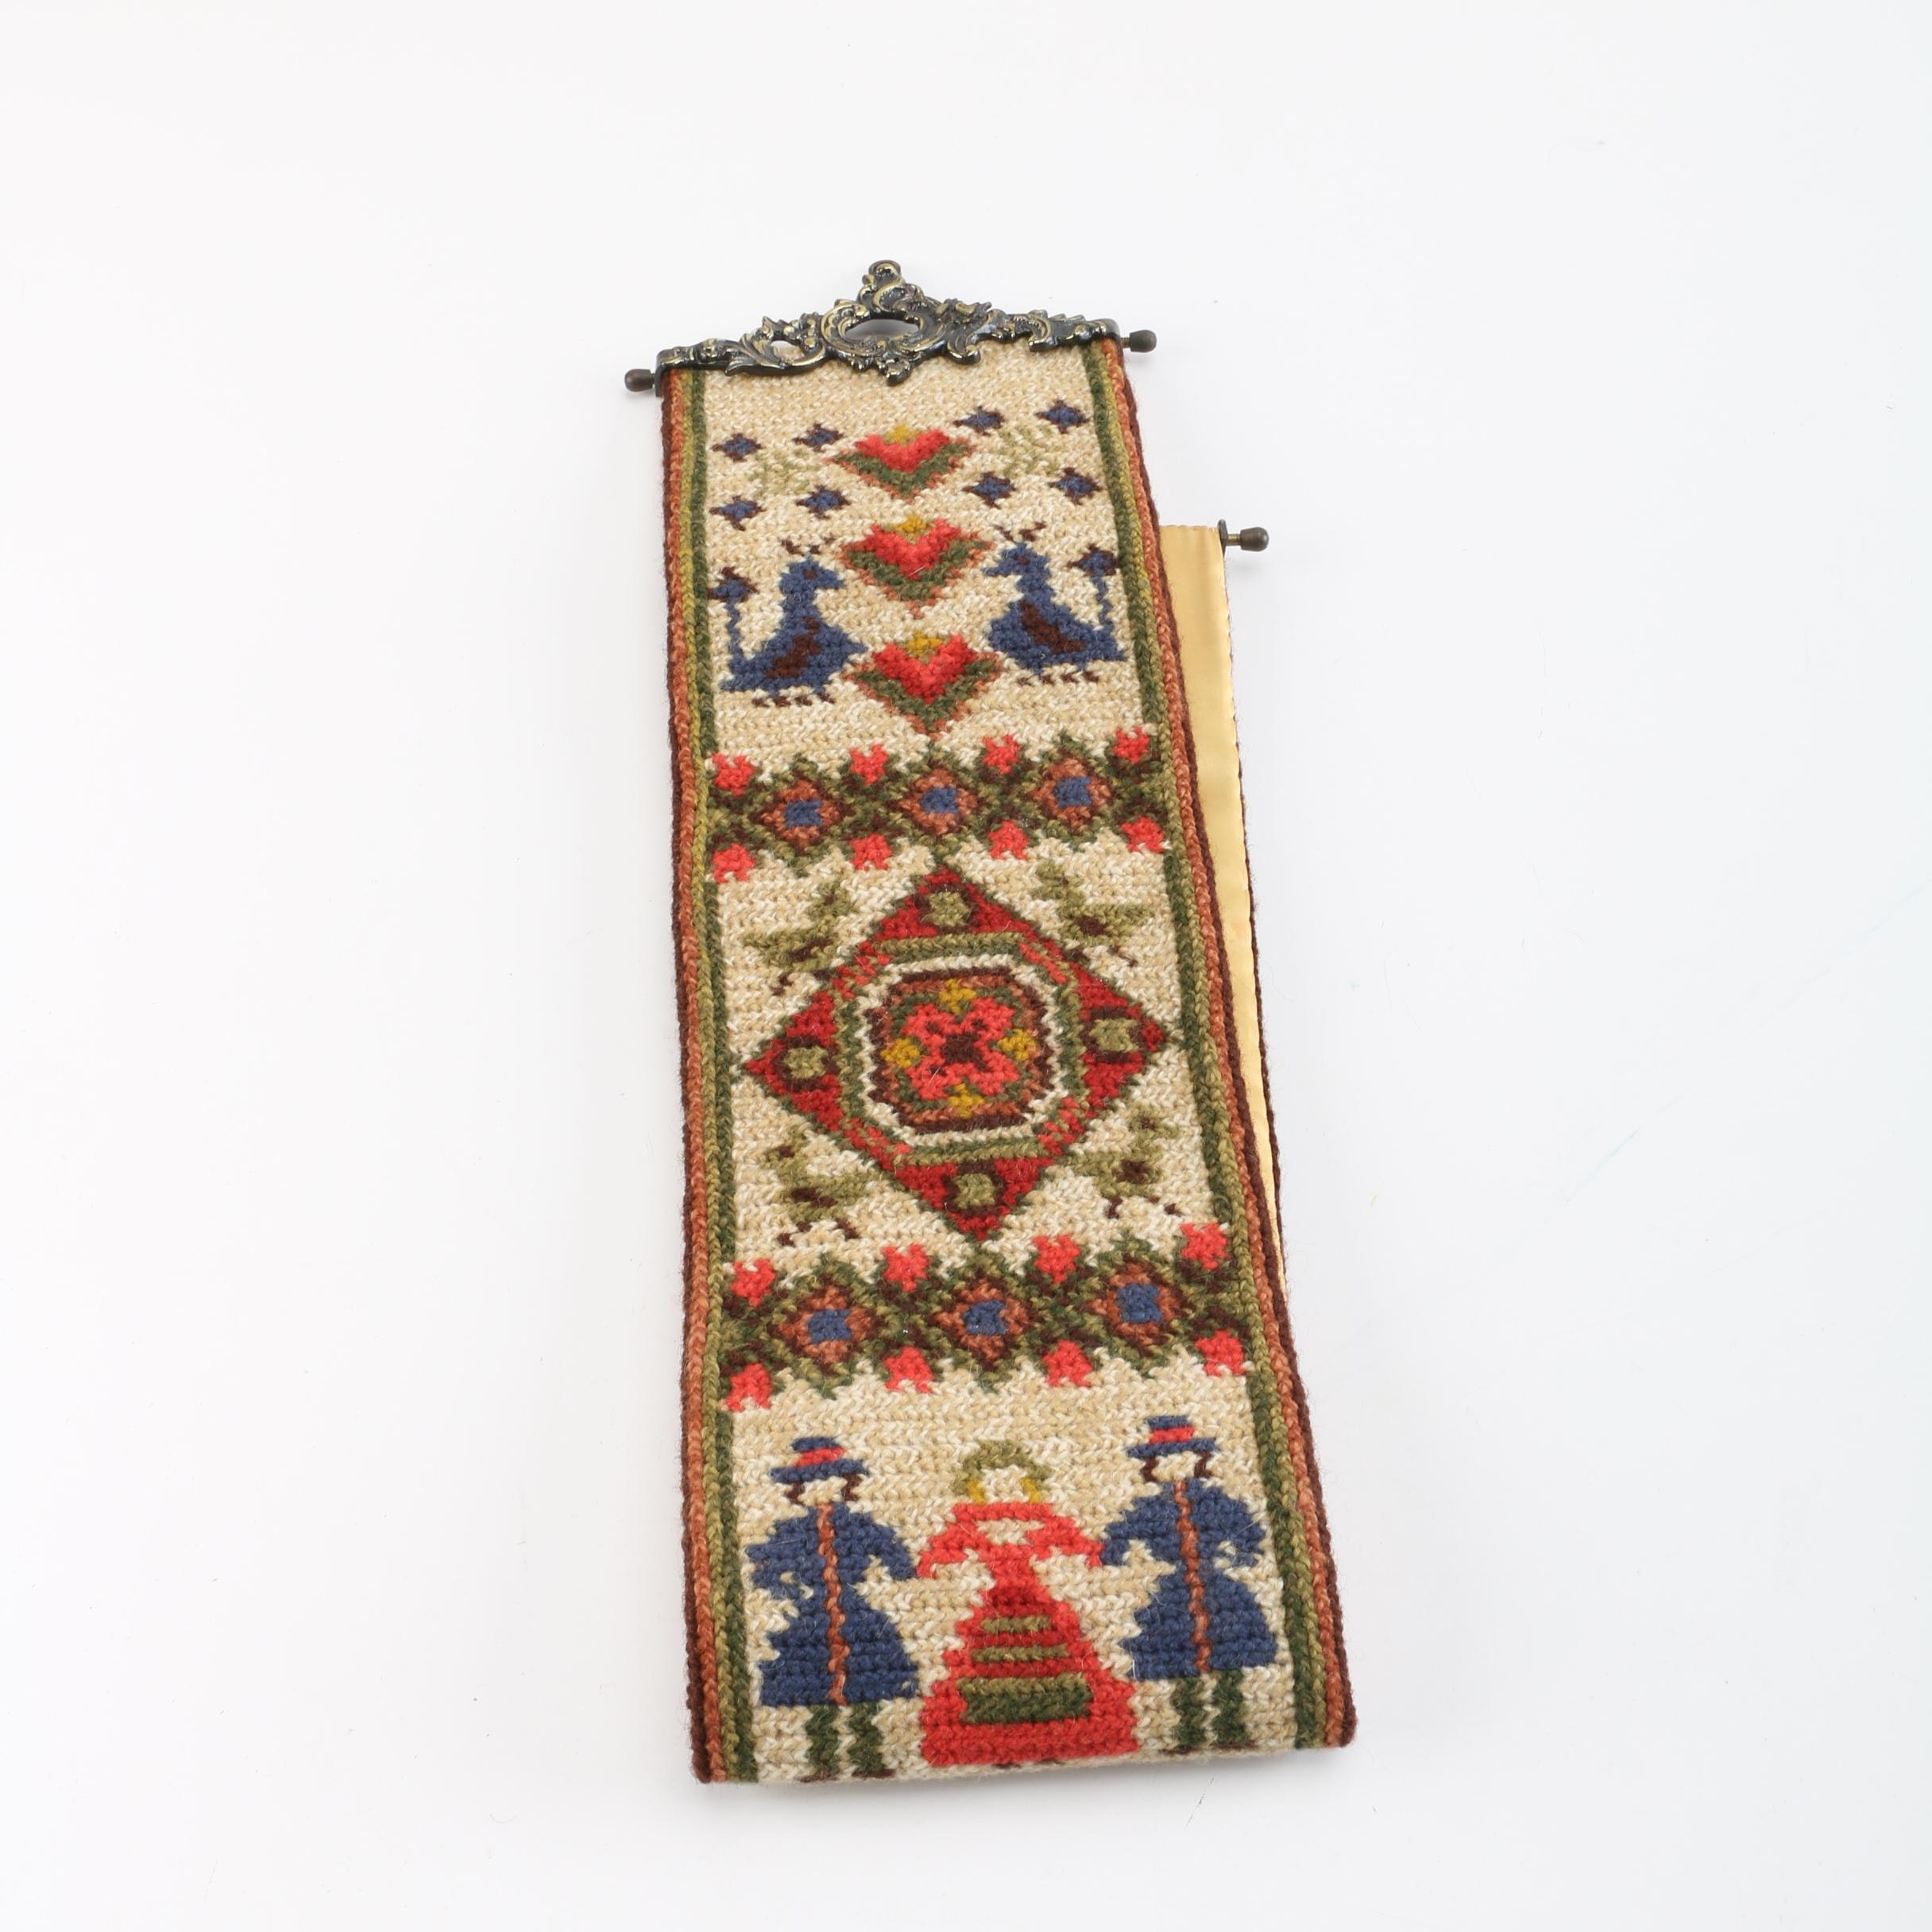 Pennsylvania Dutch Style Wool Crochet Tapestry